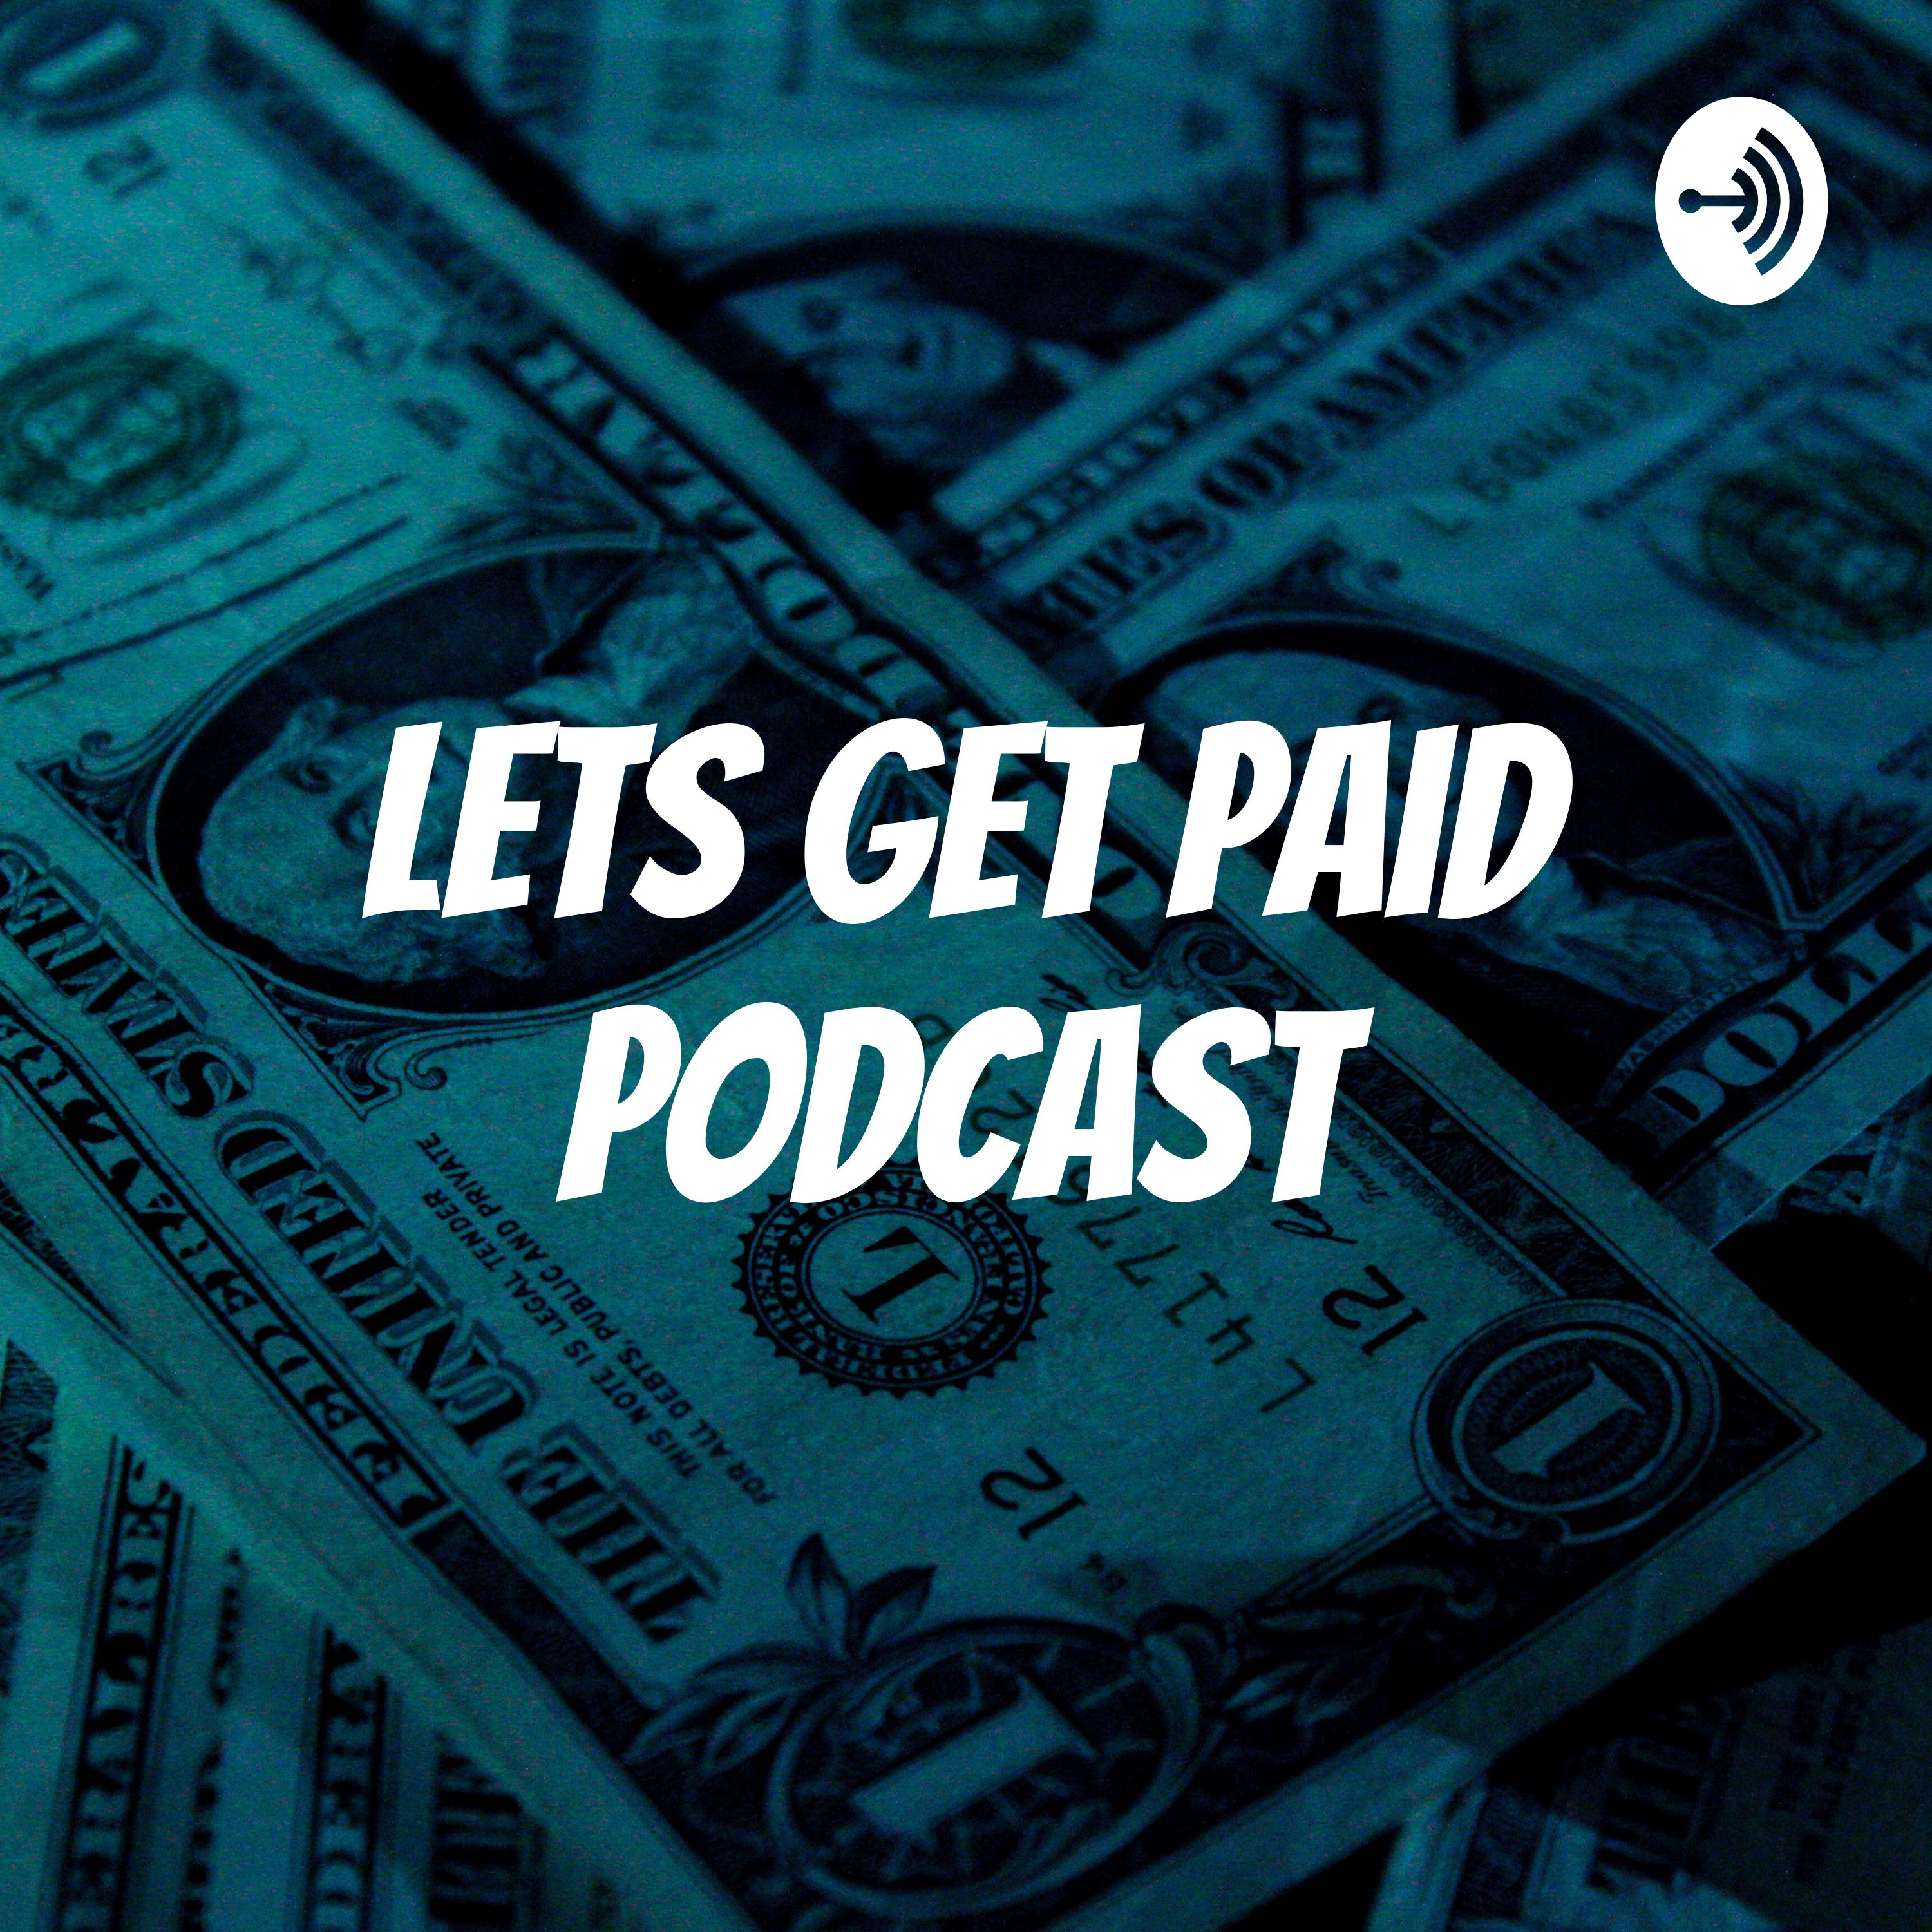 Lets Get Paid Podcast | Listen via Stitcher for Podcasts